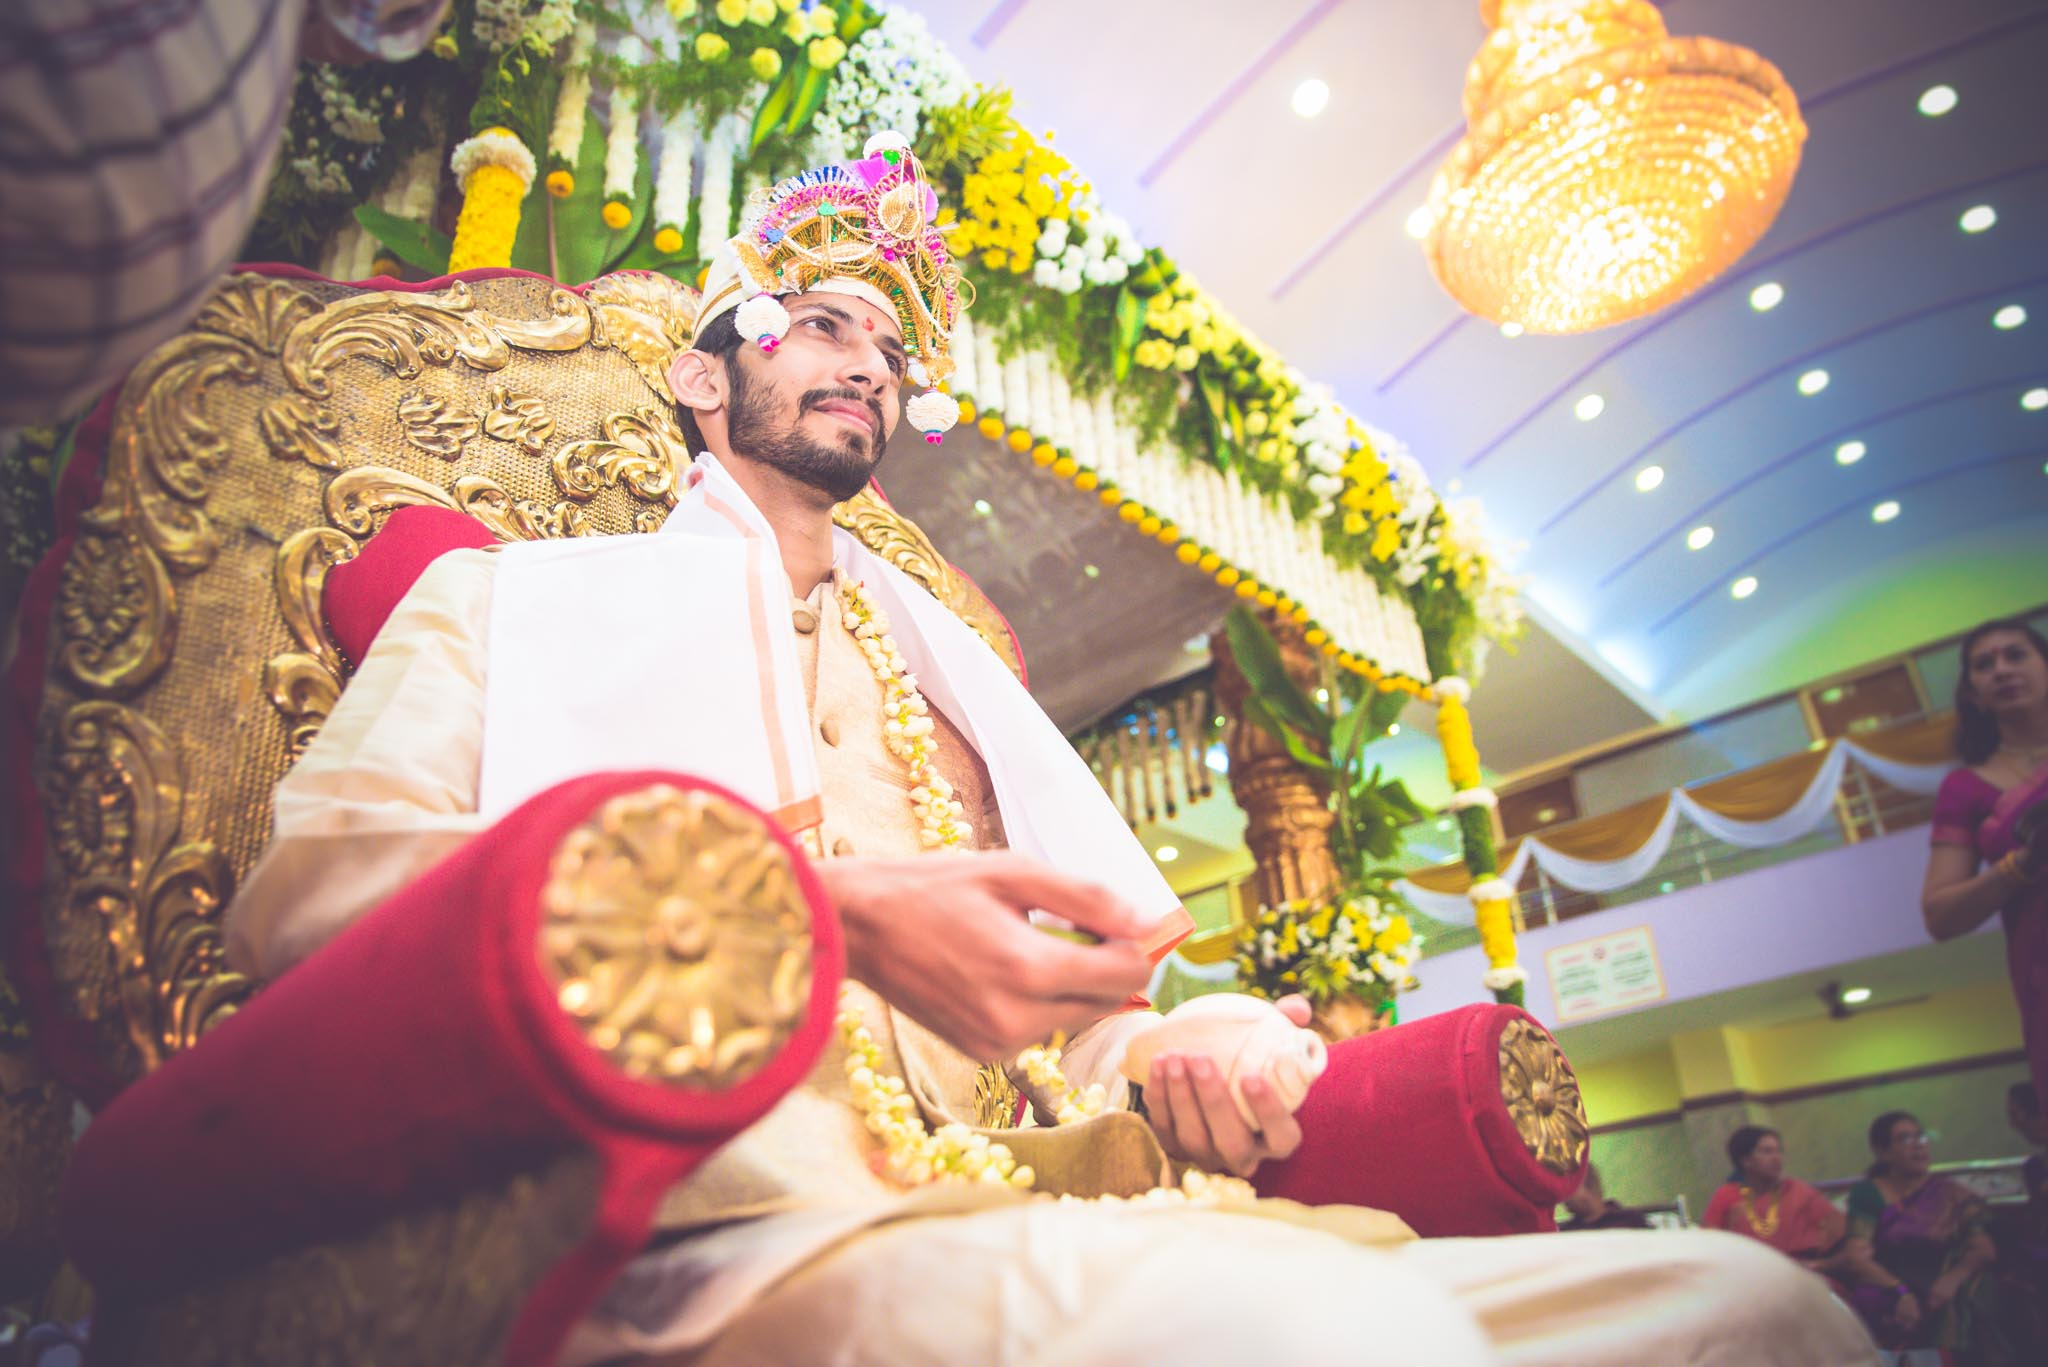 WhatKnot-Candid-Wedding-Photography-Mumbai-Bangalore-140